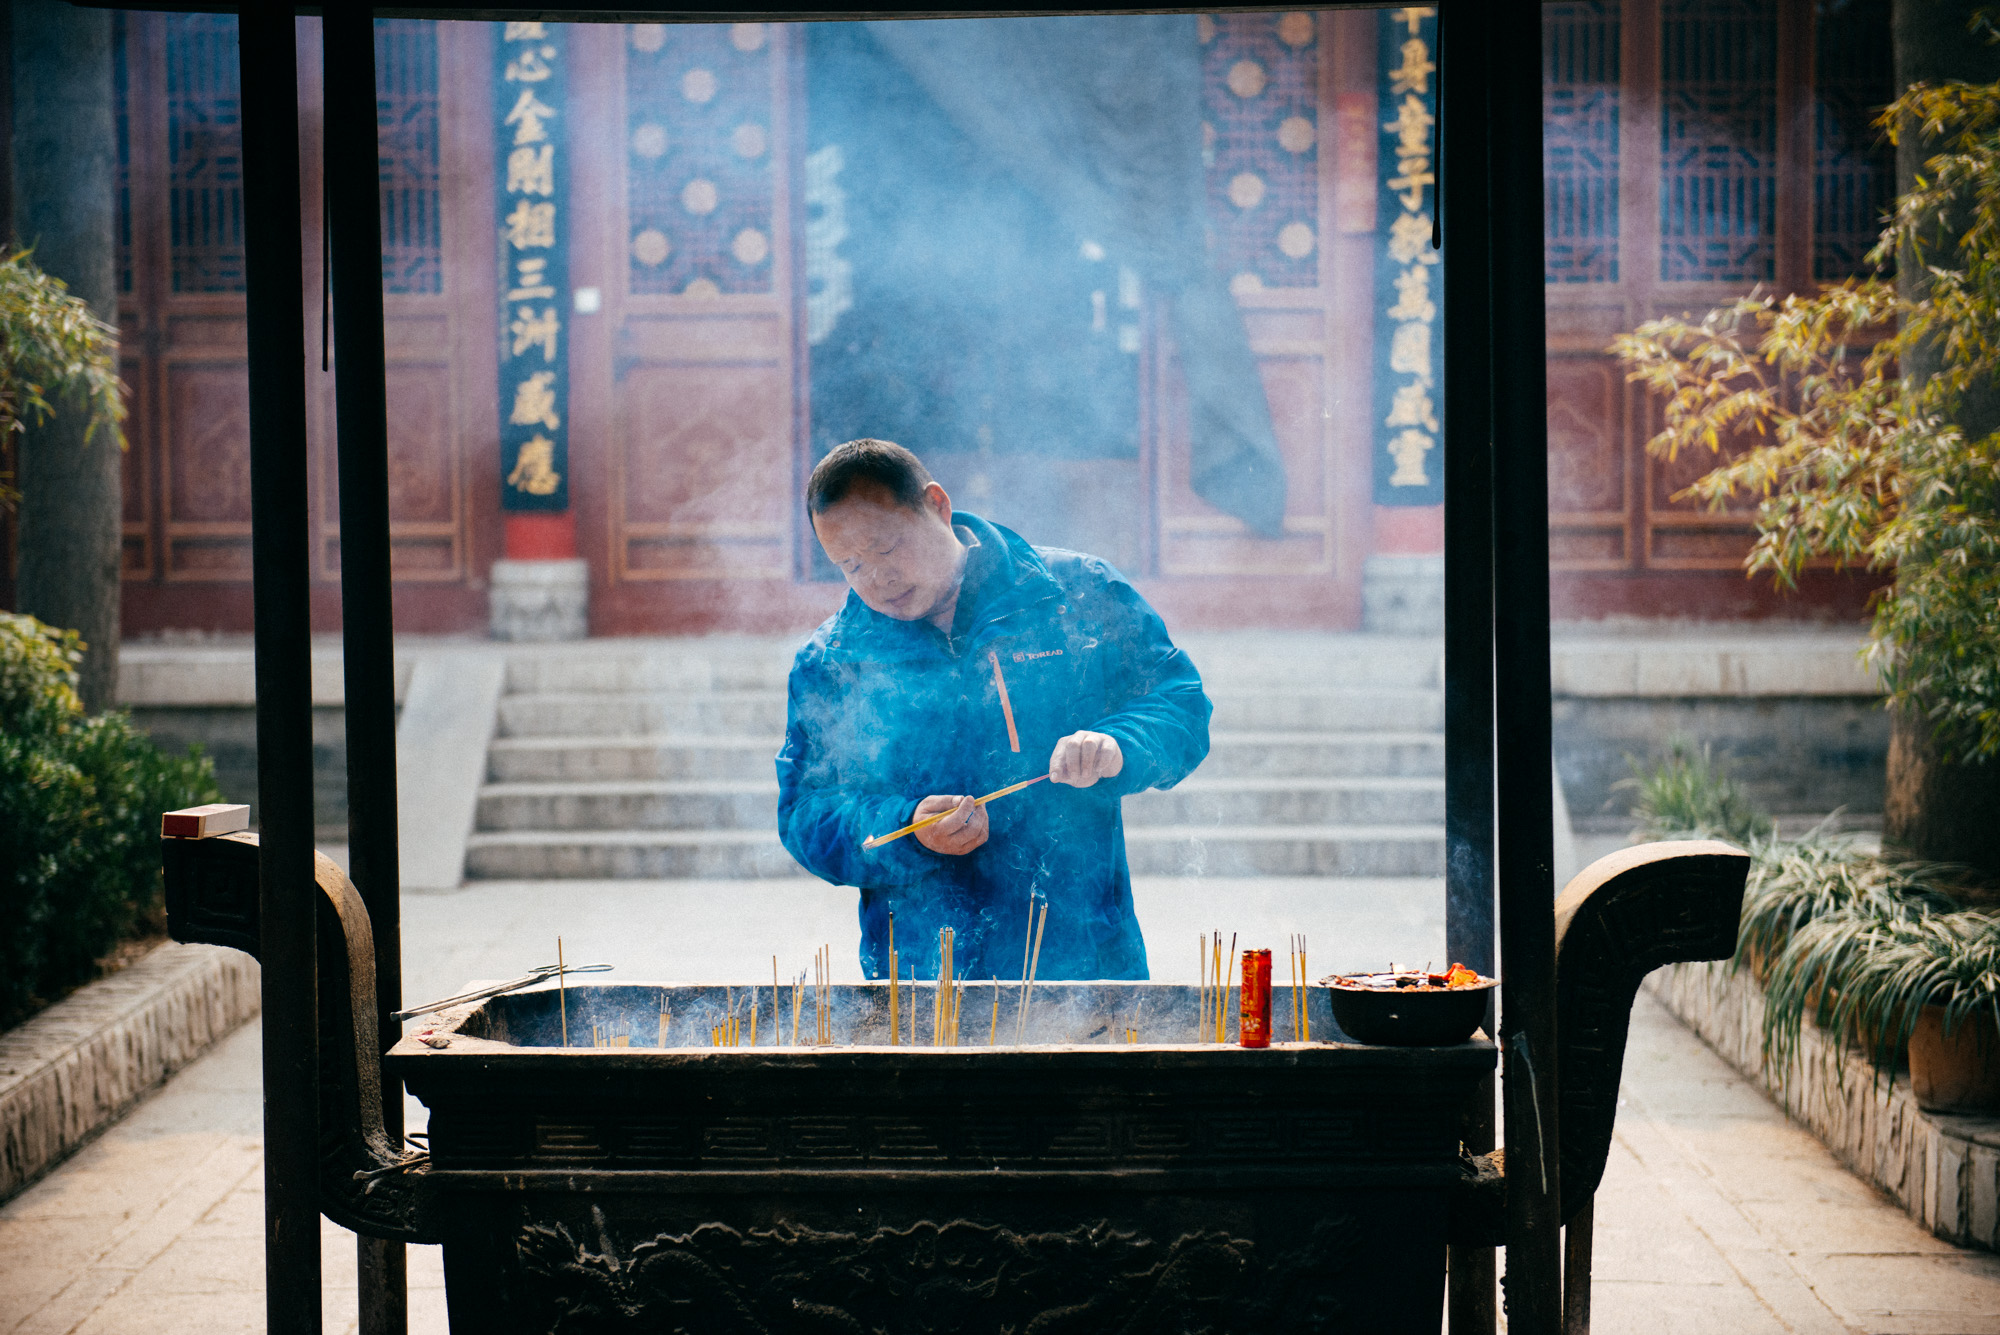 Man lights incense sticks before praying in front of a Buddha statue.